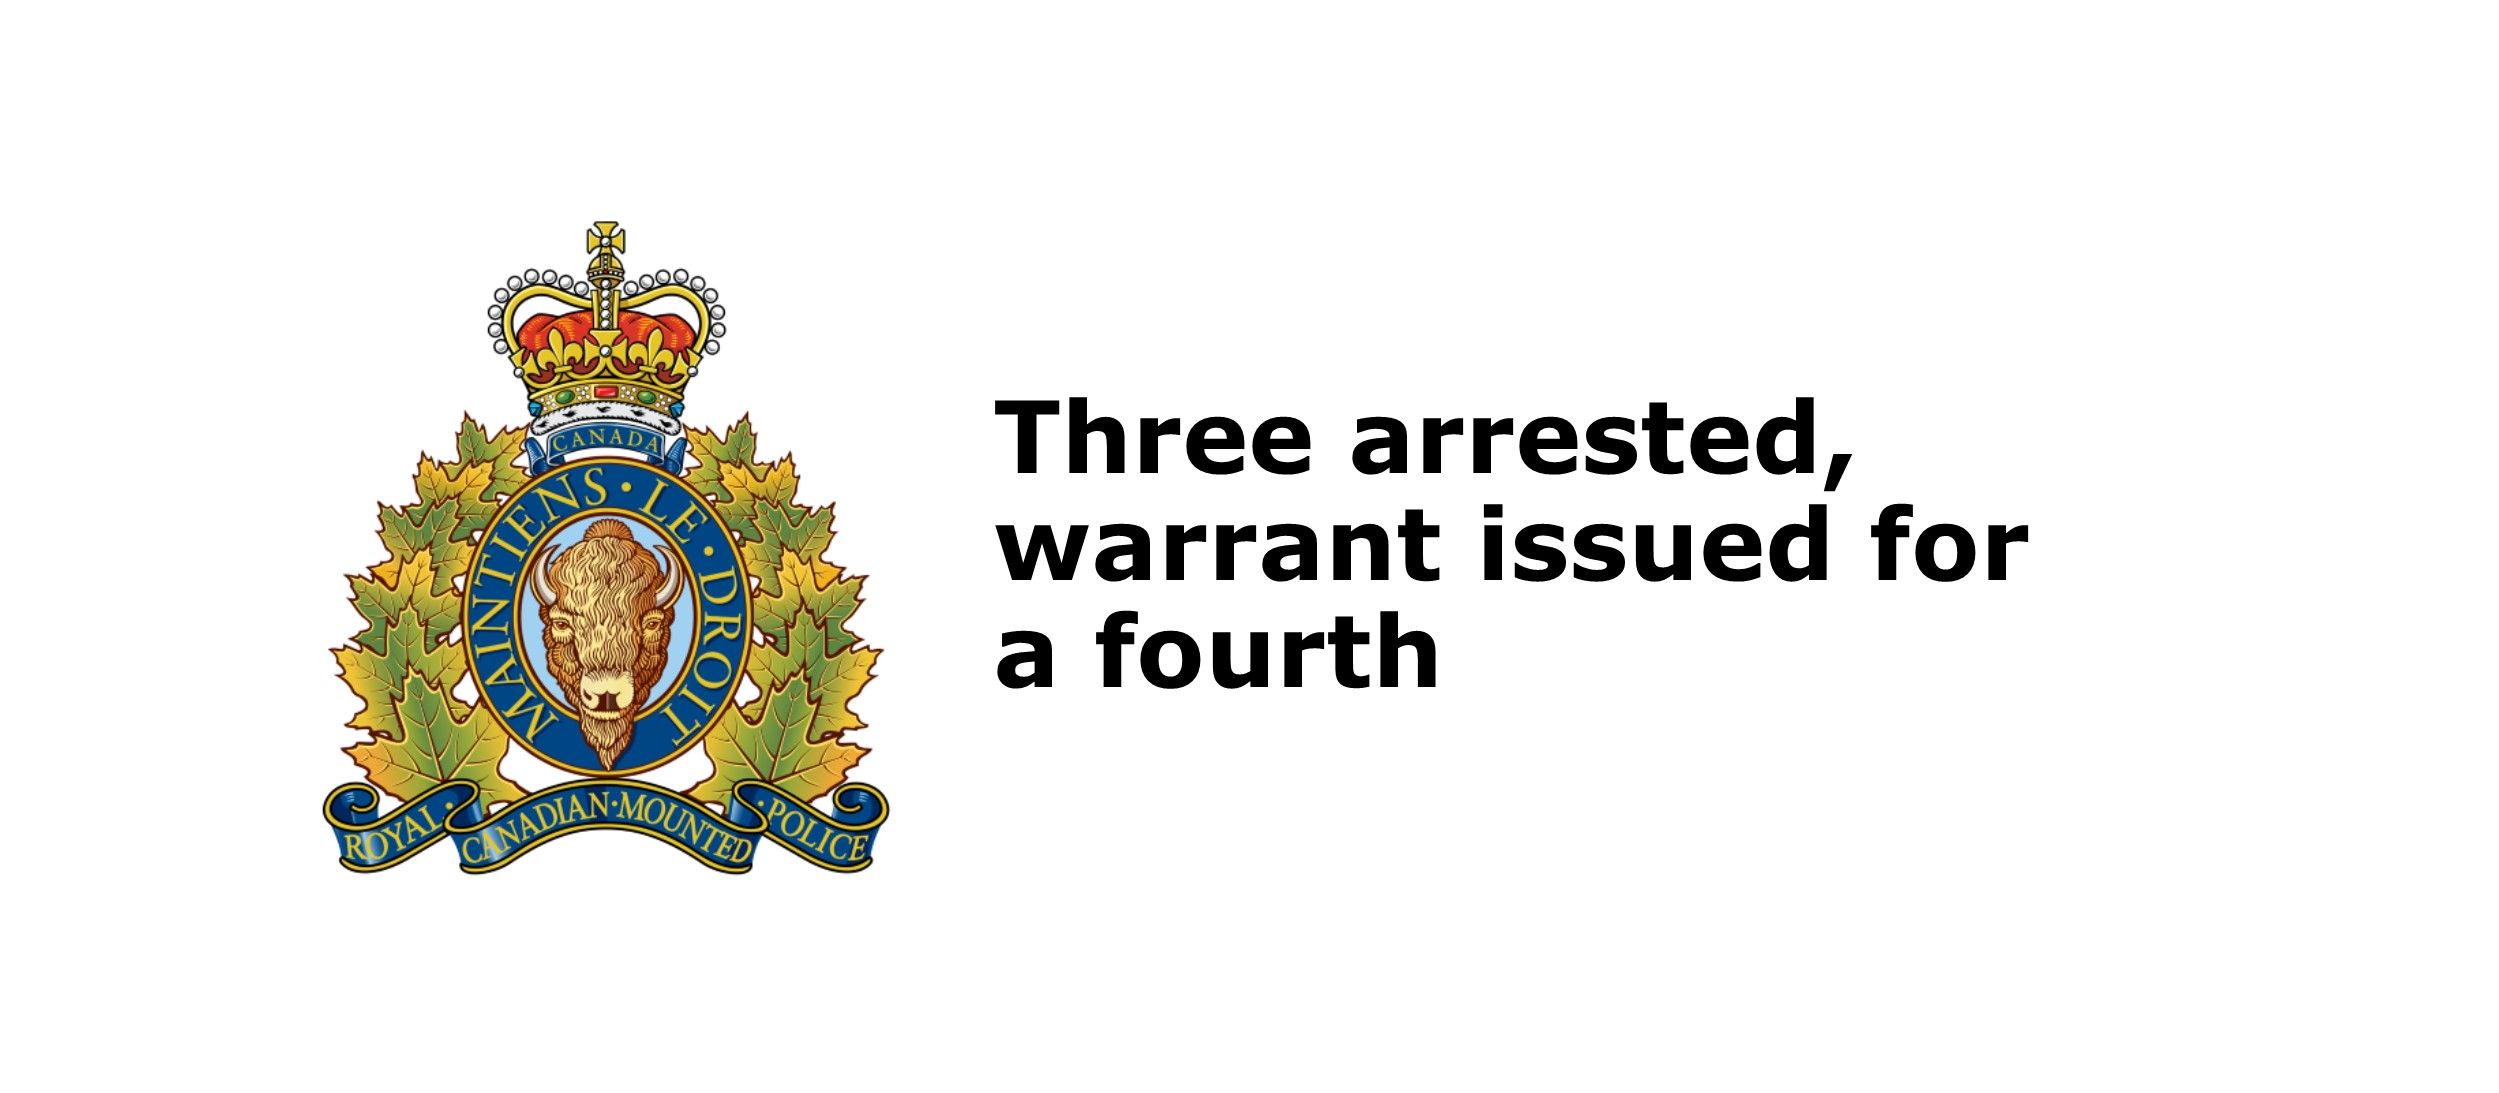 RCMP arrest and charge three, issue warrant for a fourth